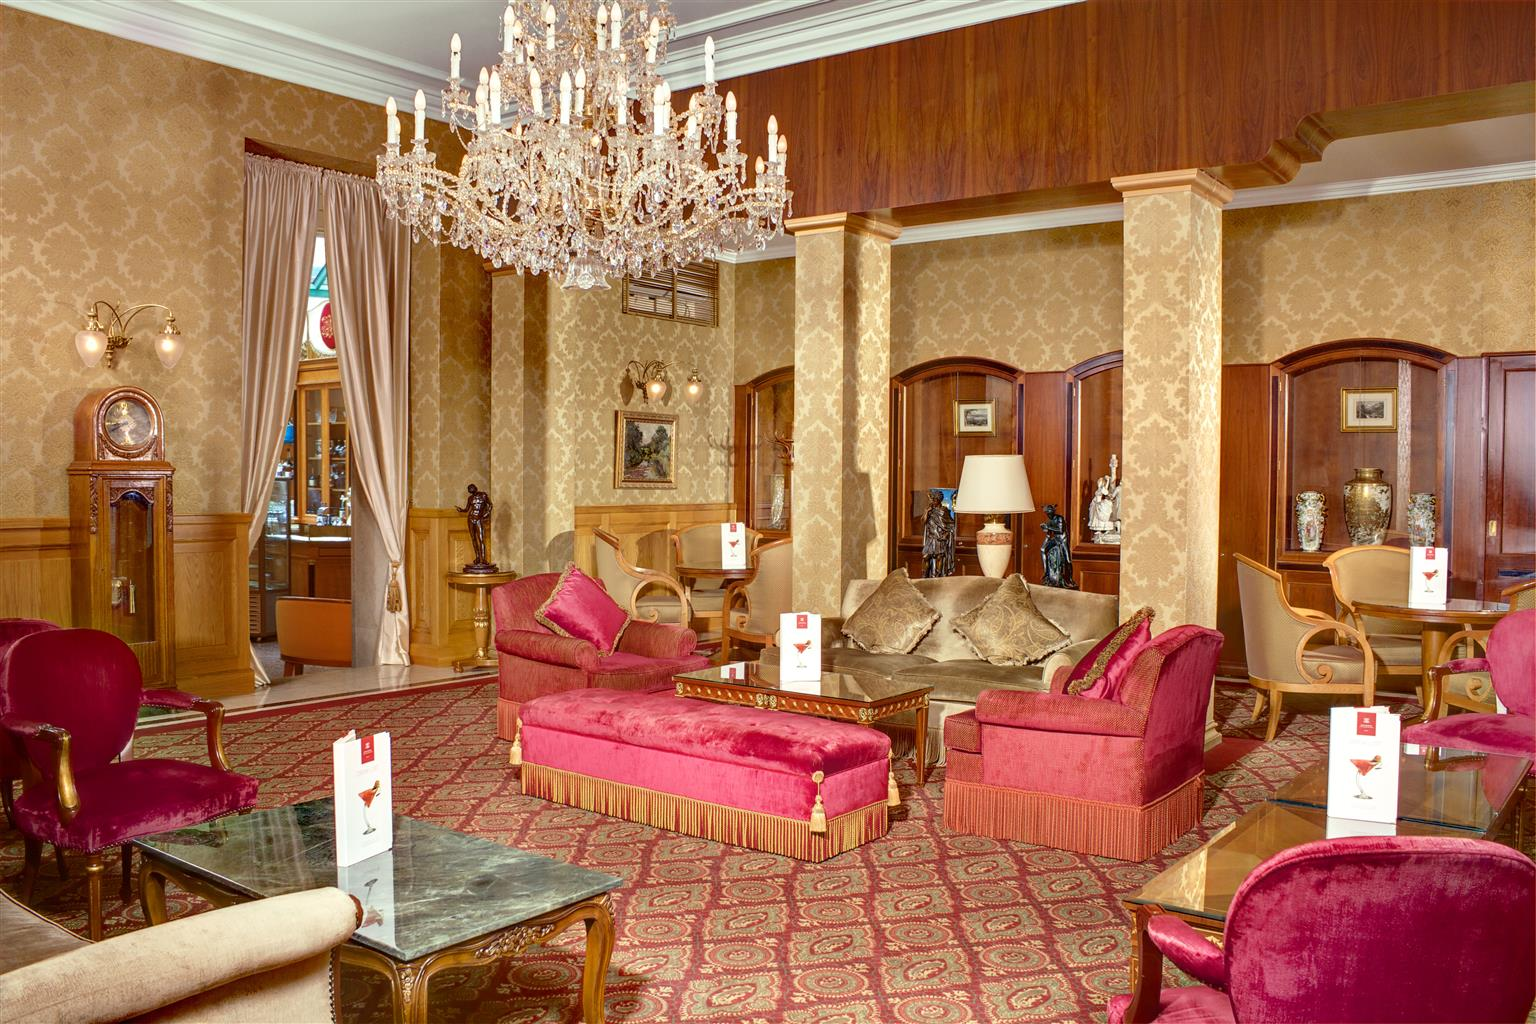 Hotel National Moscow, Hotel National, a Luxury Collection Hotel, Moscow   Hipmunk